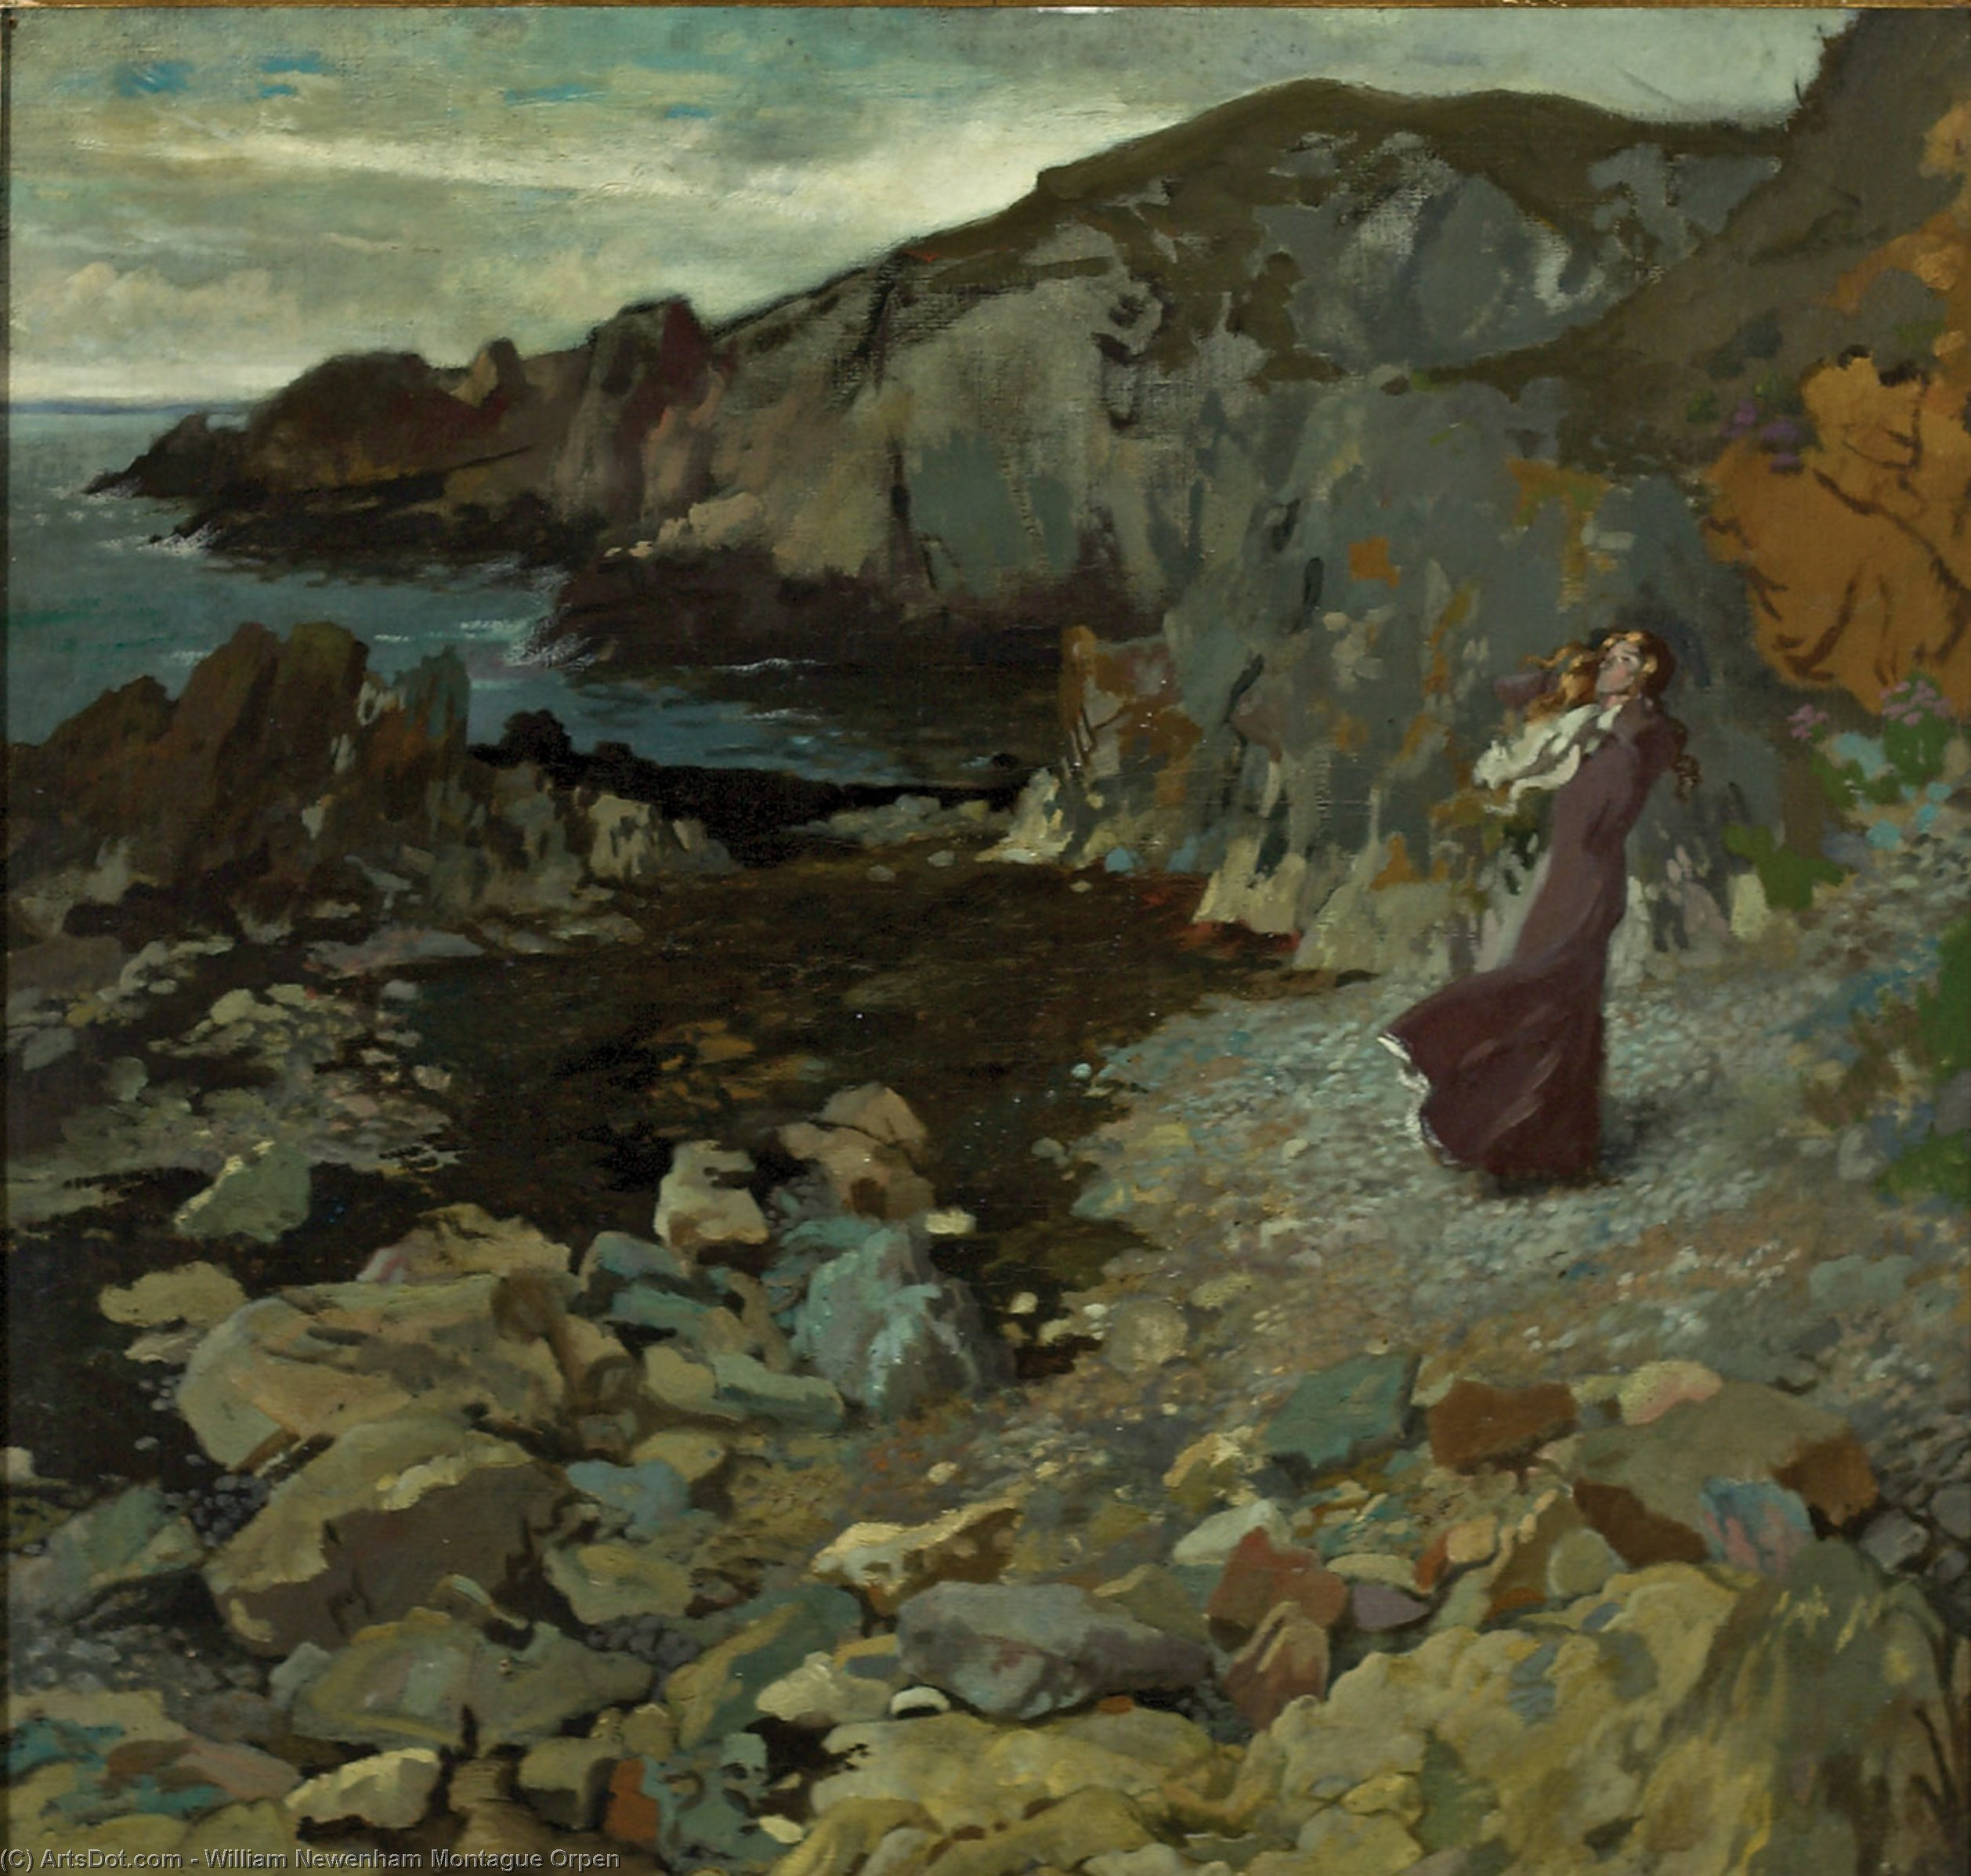 roccioso costa scena a howth, olio su tela di William Newenham Montague Orpen (1878-1931, Ireland)